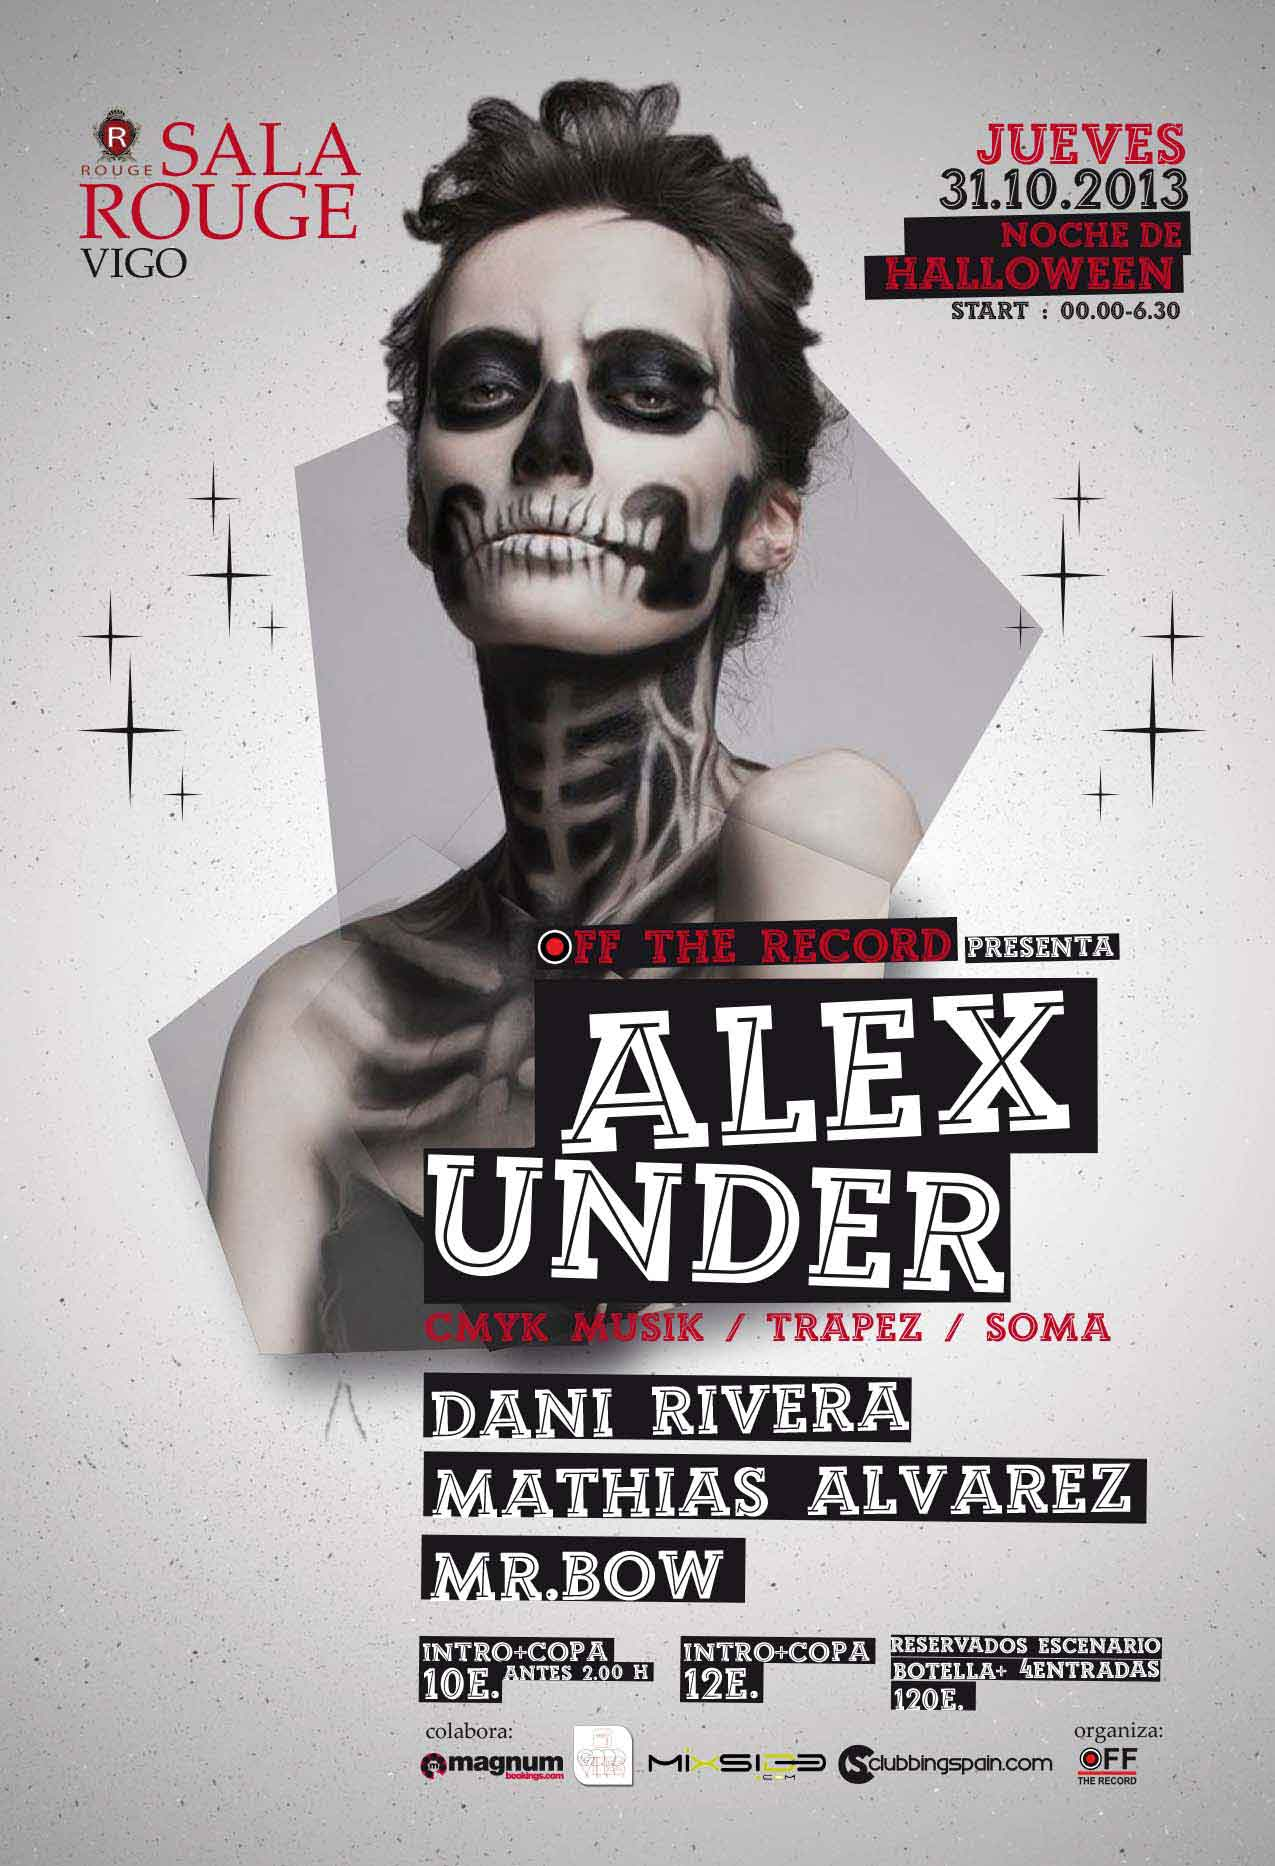 Alex-Under--Dani-Rivera--Mathias-Alvarez-@-Halloween-Sala-Rouge-Vigo-2013